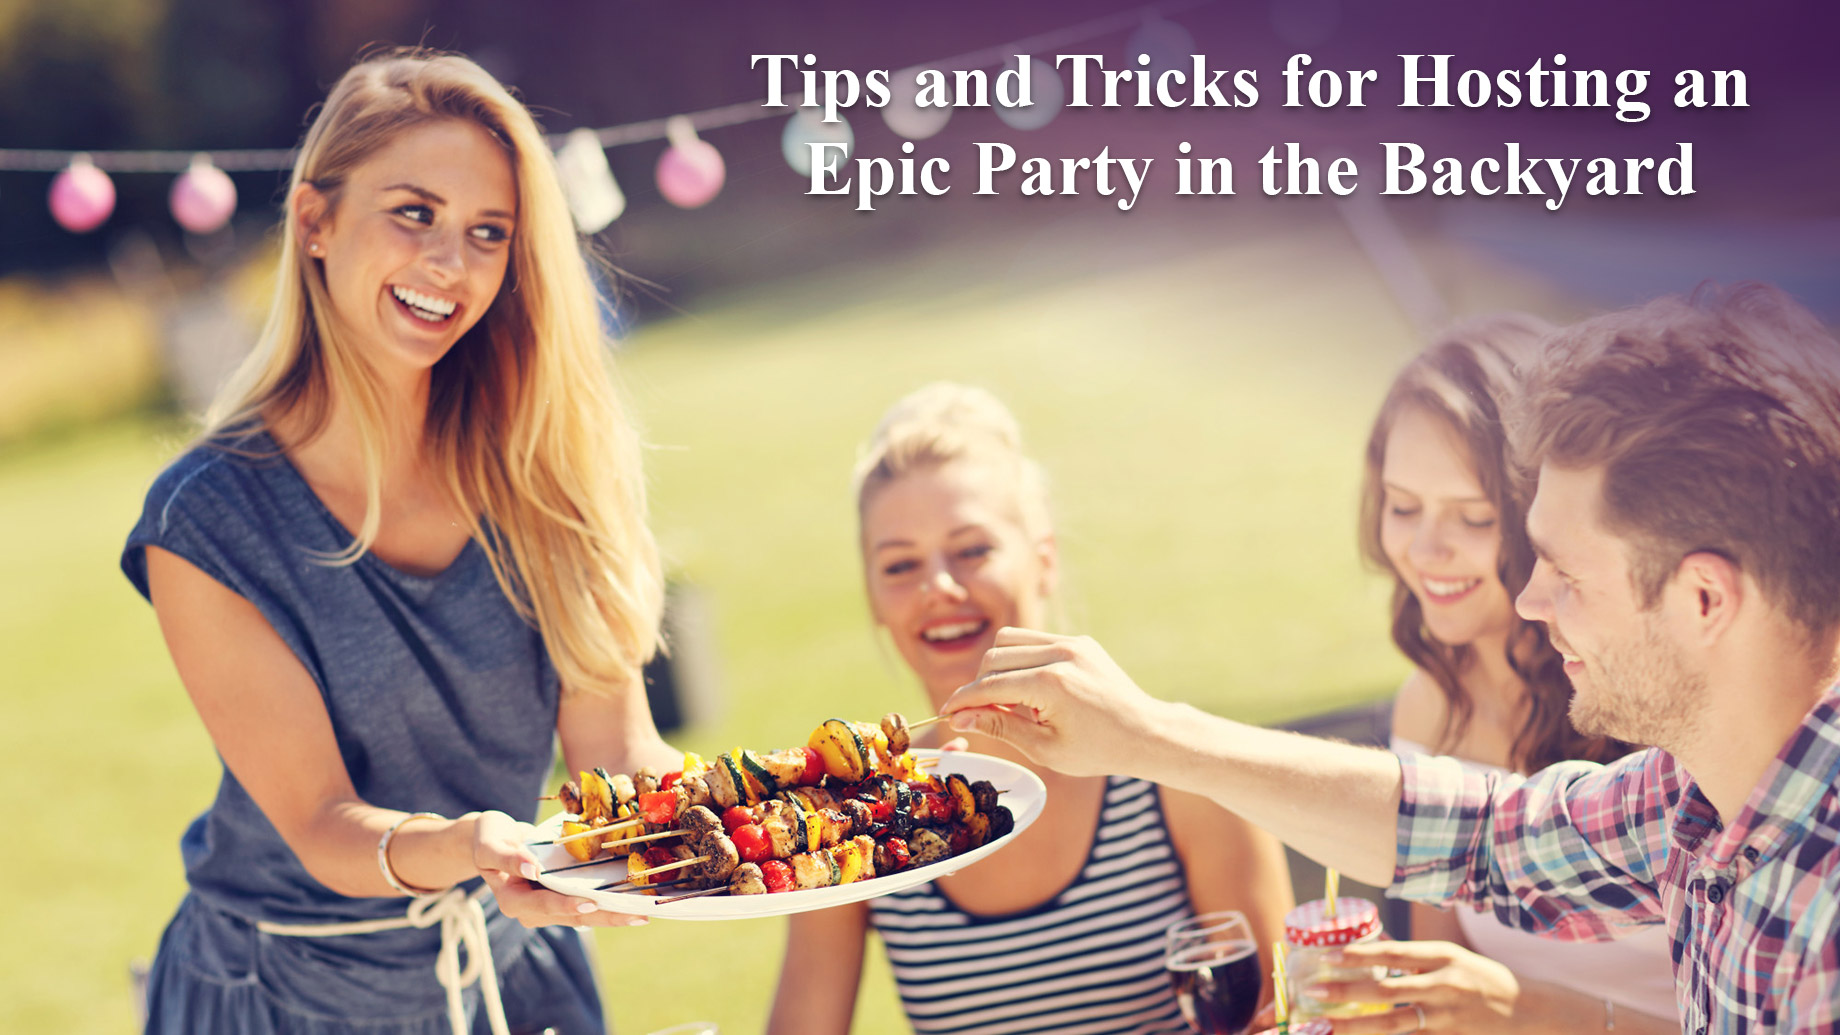 Tips and Tricks for Hosting an Epic Party in the Backyard